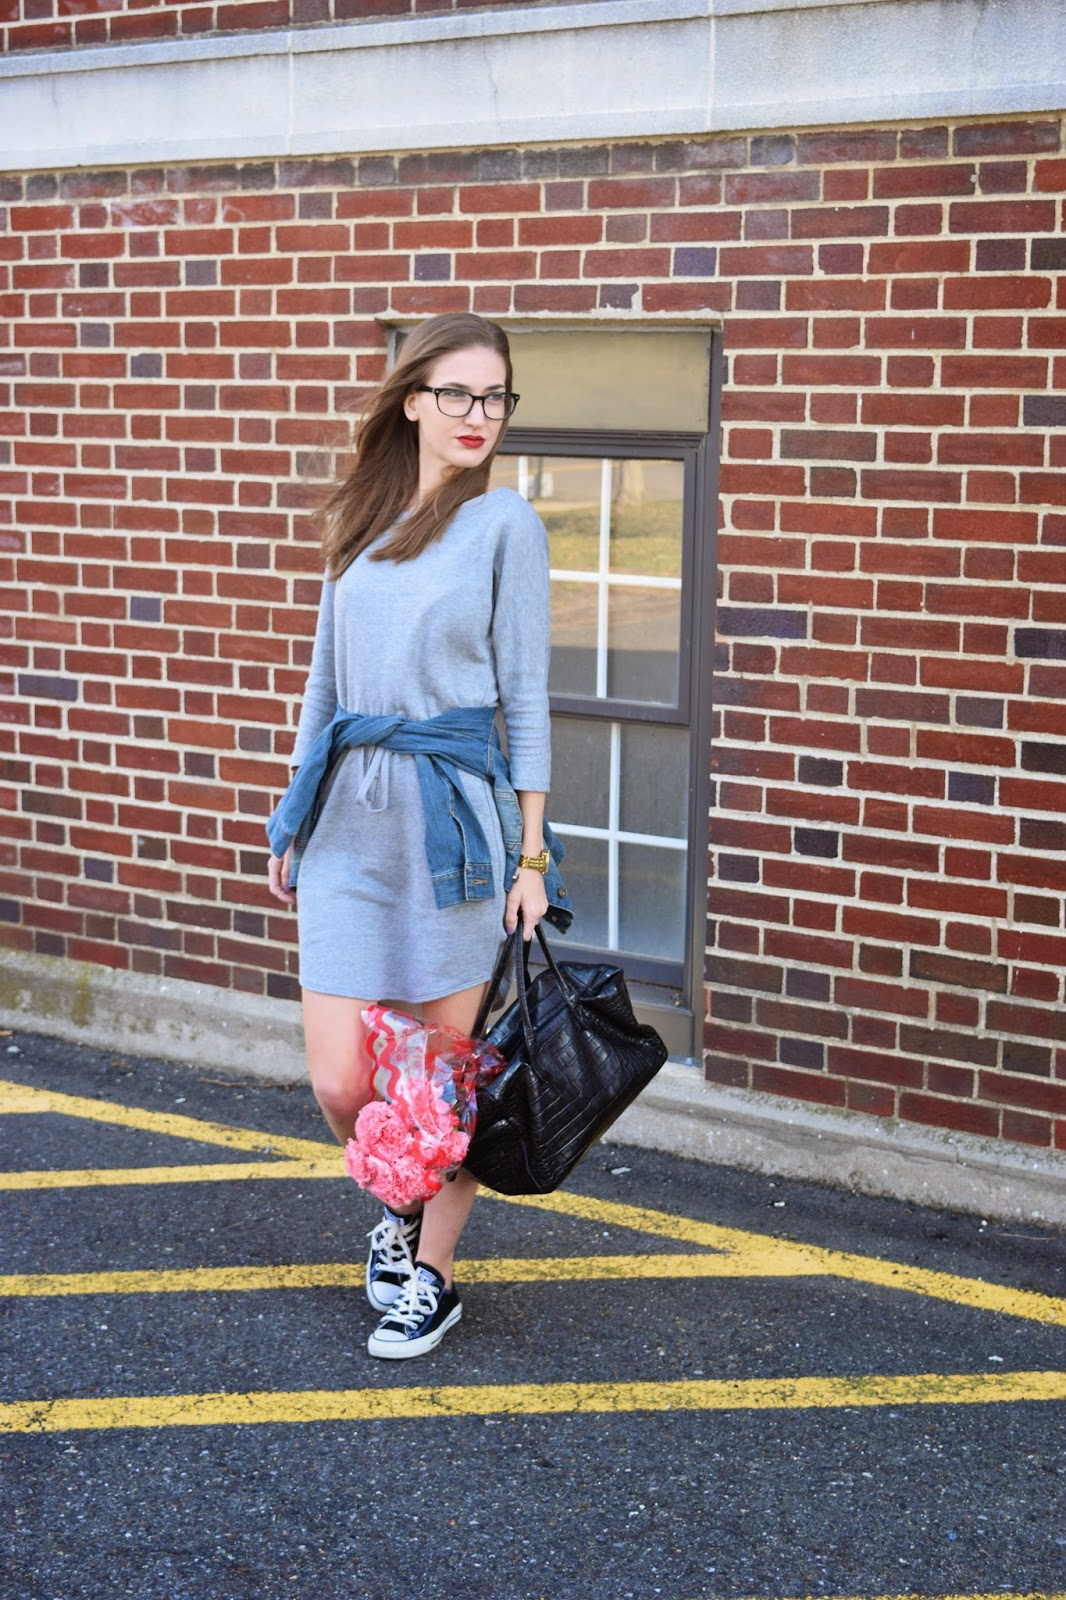 Wearing Firmoo non prescription glasses, Caslon drawstring sweat shirt dress, converses with a dress, denim jacket